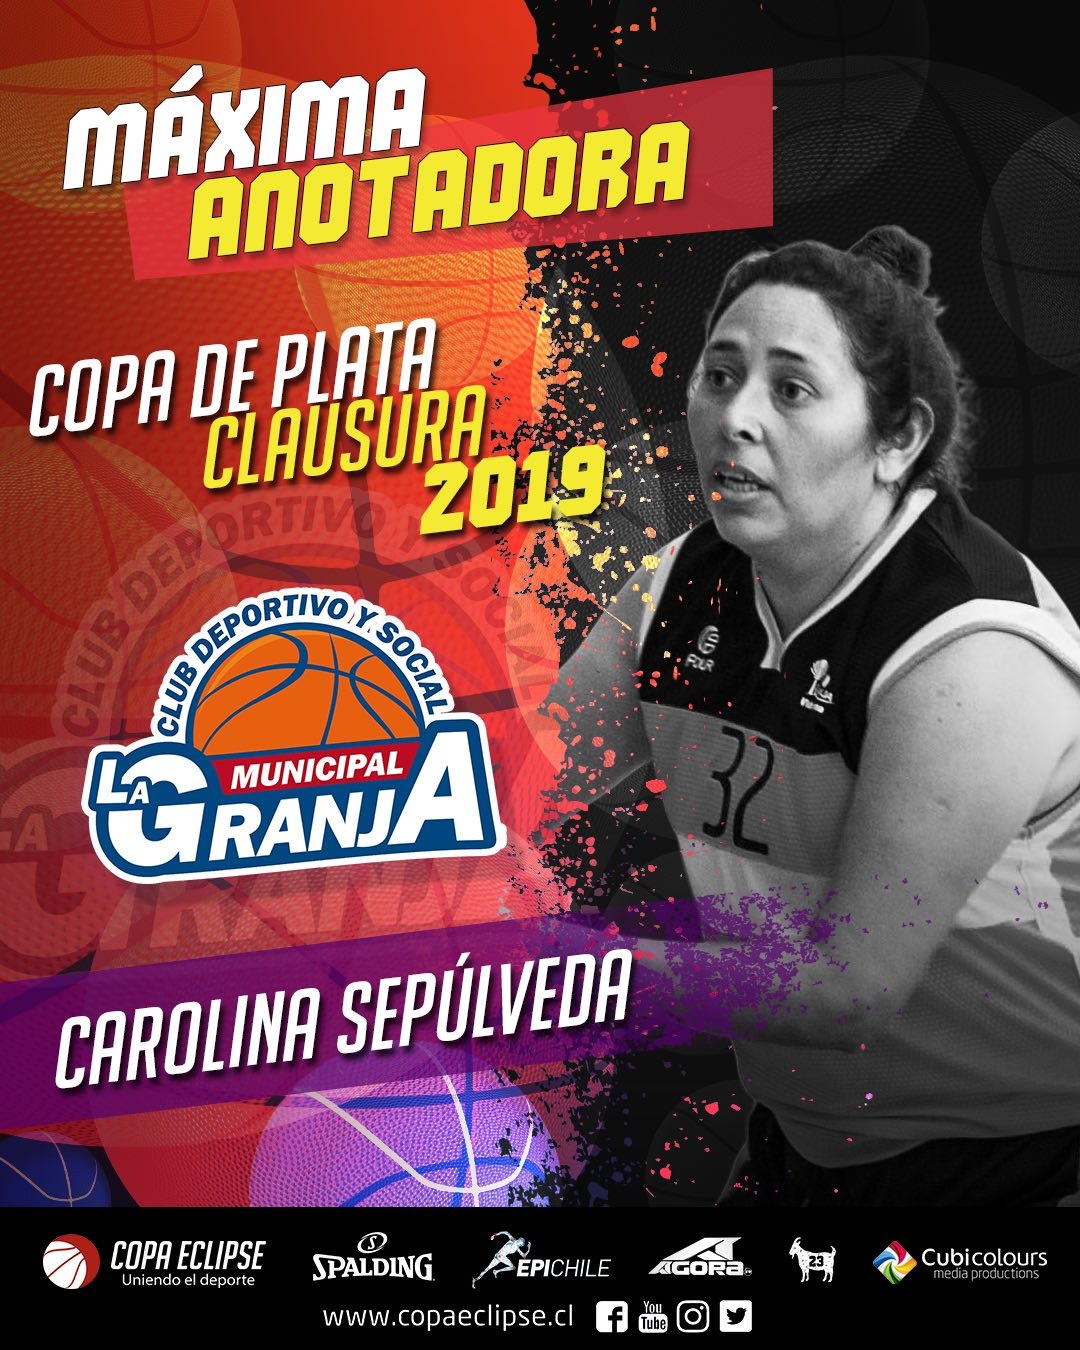 Carolina Sepulveda Anotadora Plata 2019C Low